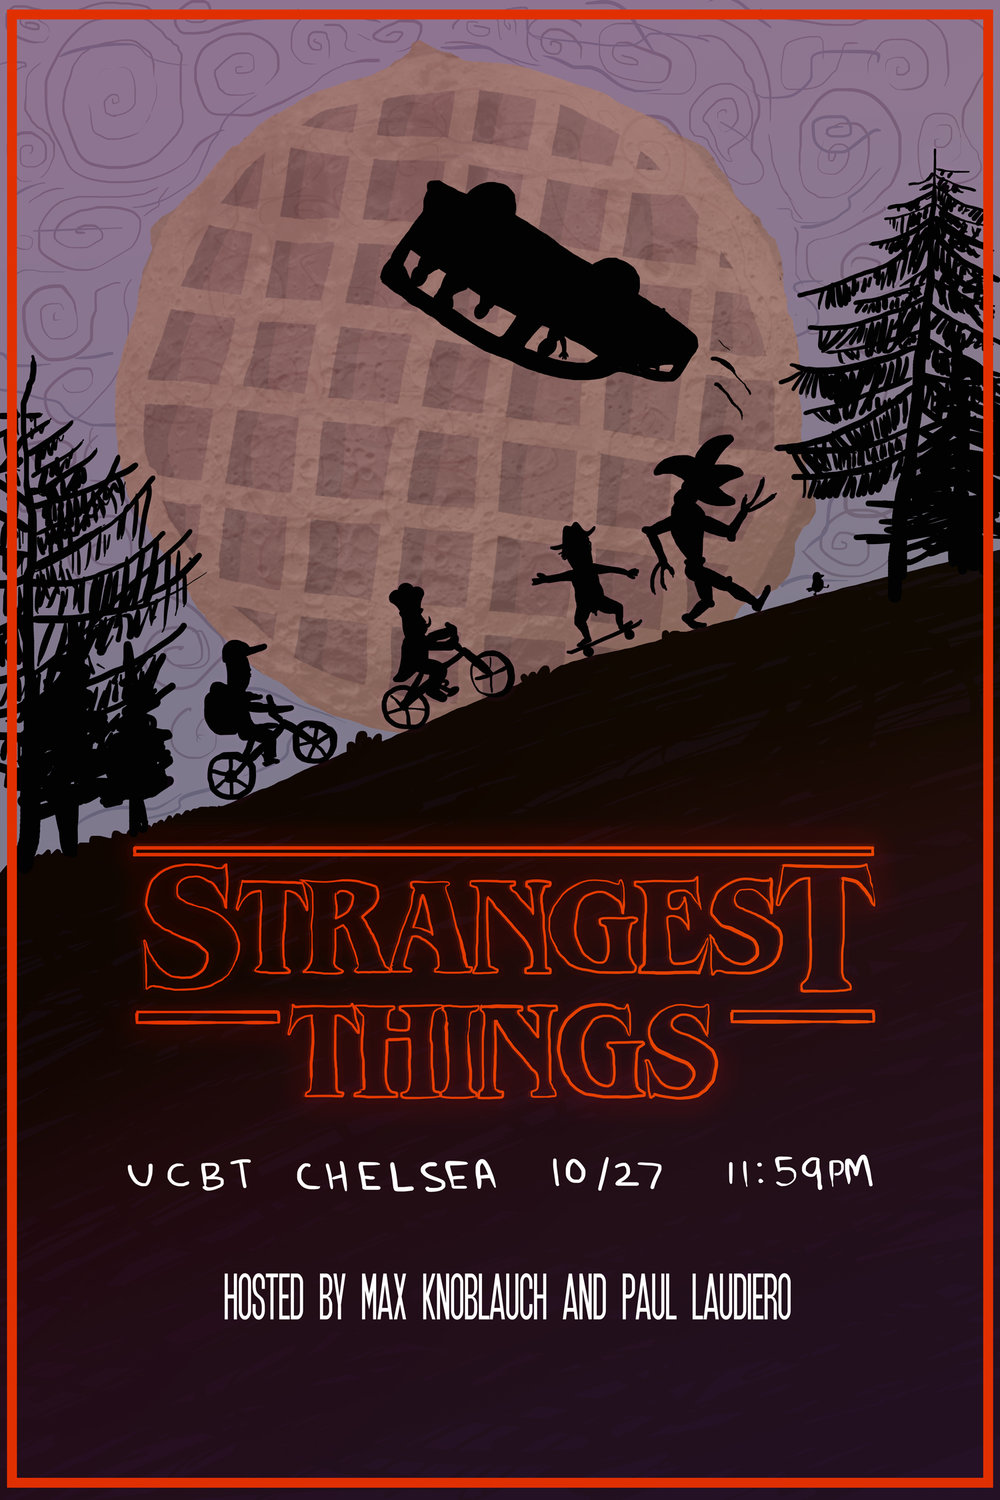 stranger-things-poster copy.jpg